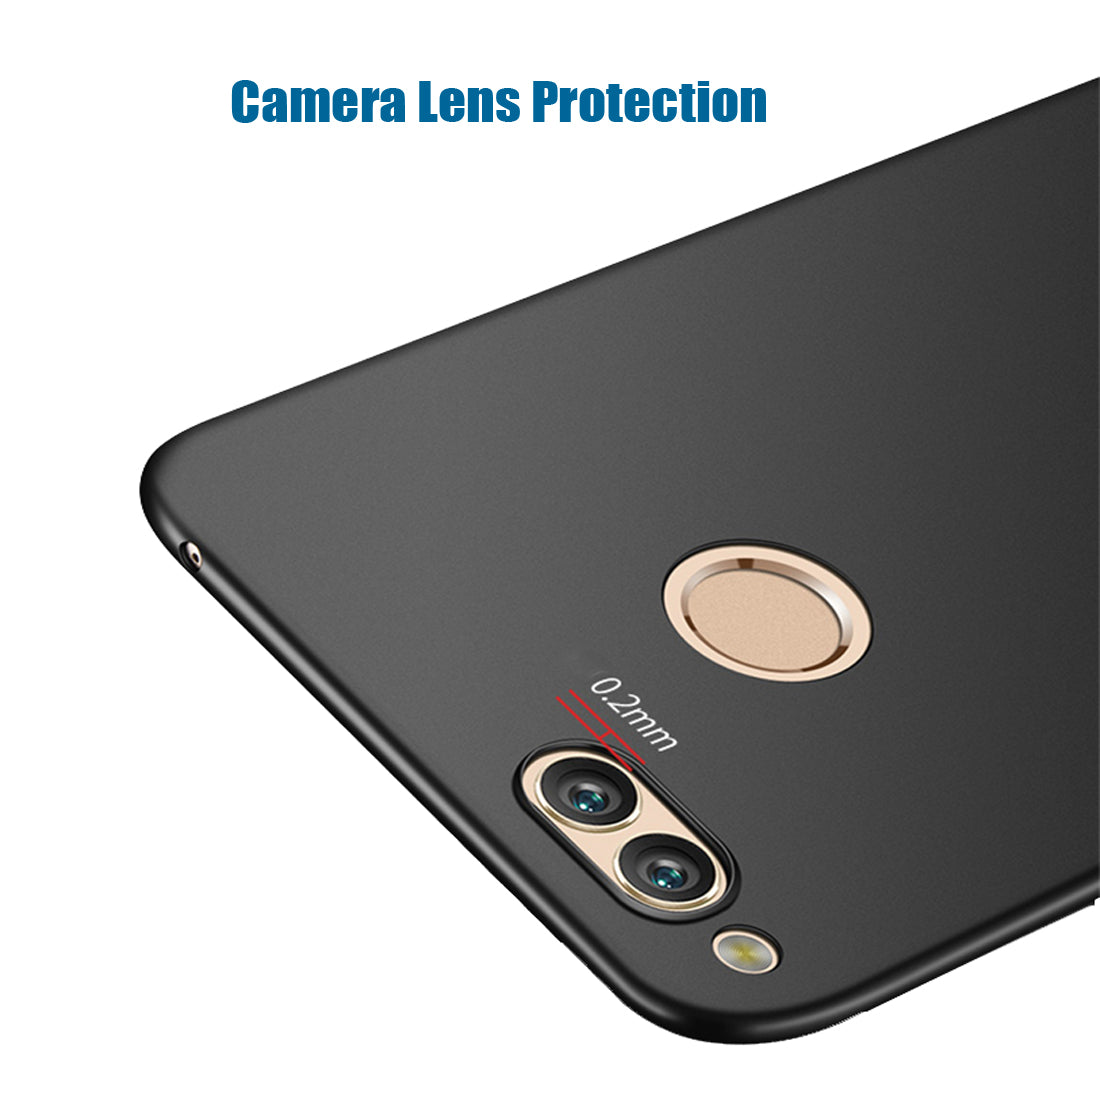 Silk Smooth Finish [Full Coverage] All Sides Protection Slim Back Case Cover For Huawei Honor 7X - Black - Mobizang